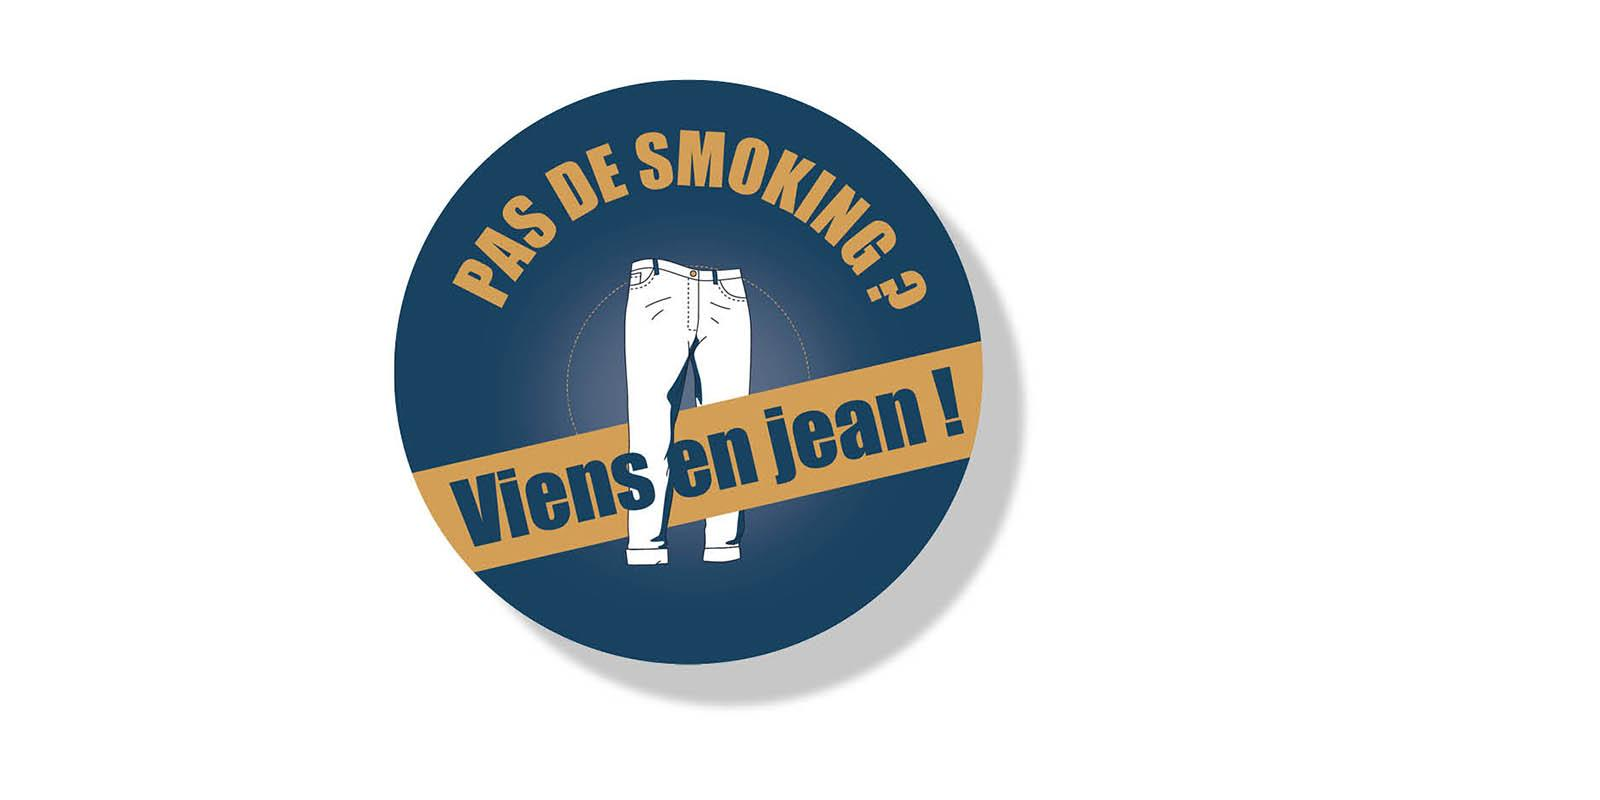 Pas de smoking